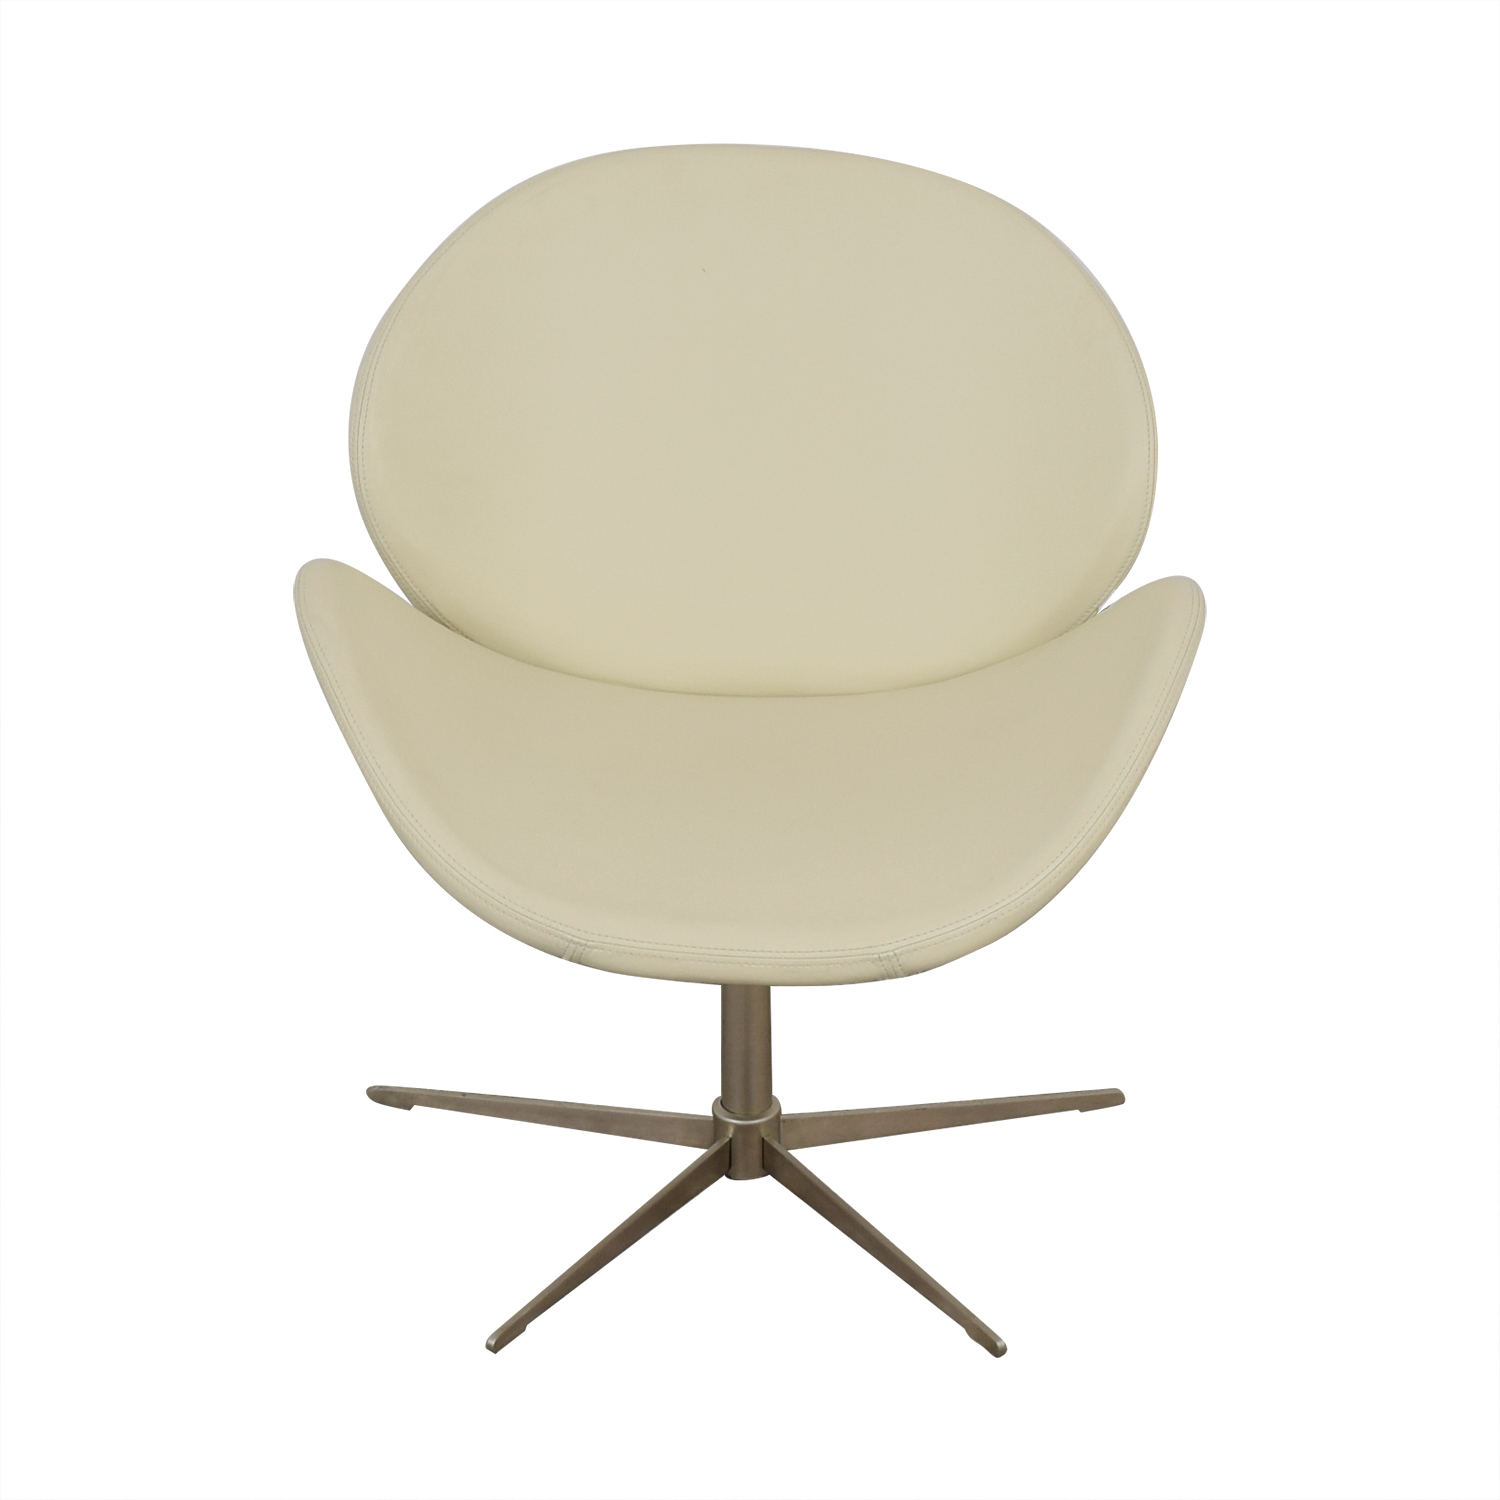 BoConcept BoConcept OGI Chair with Footstool Chairs